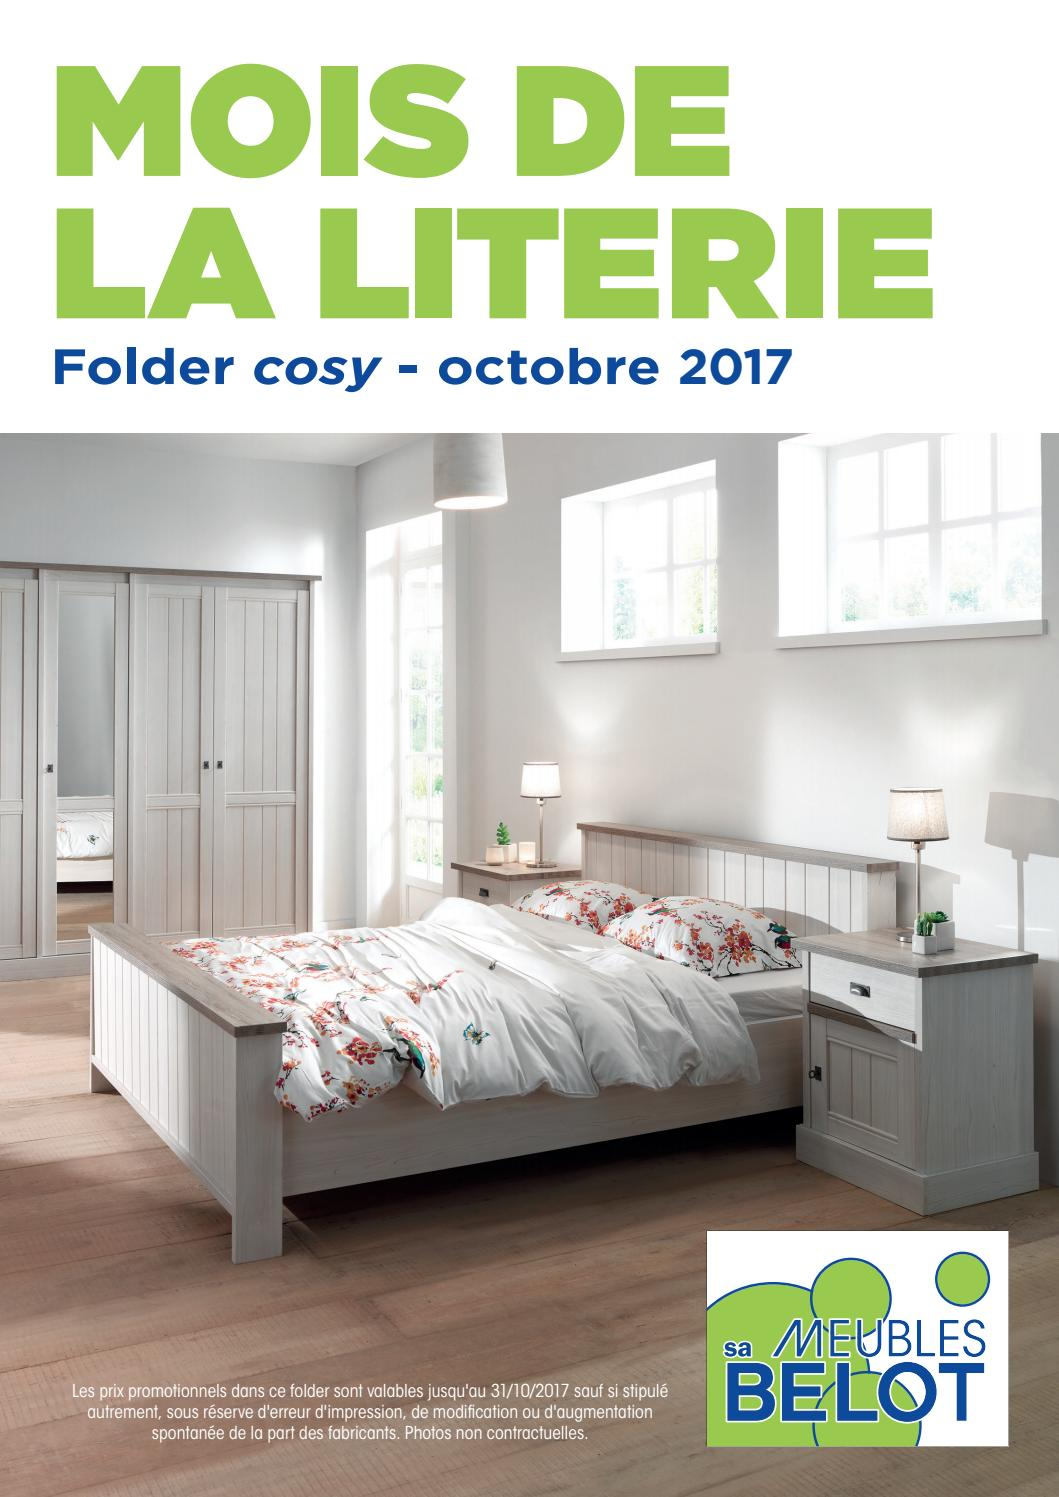 Meuble Belot Porte Manteau Belot Folders Cosy Octobre 2017 By Meubles Belot Sa Issuu